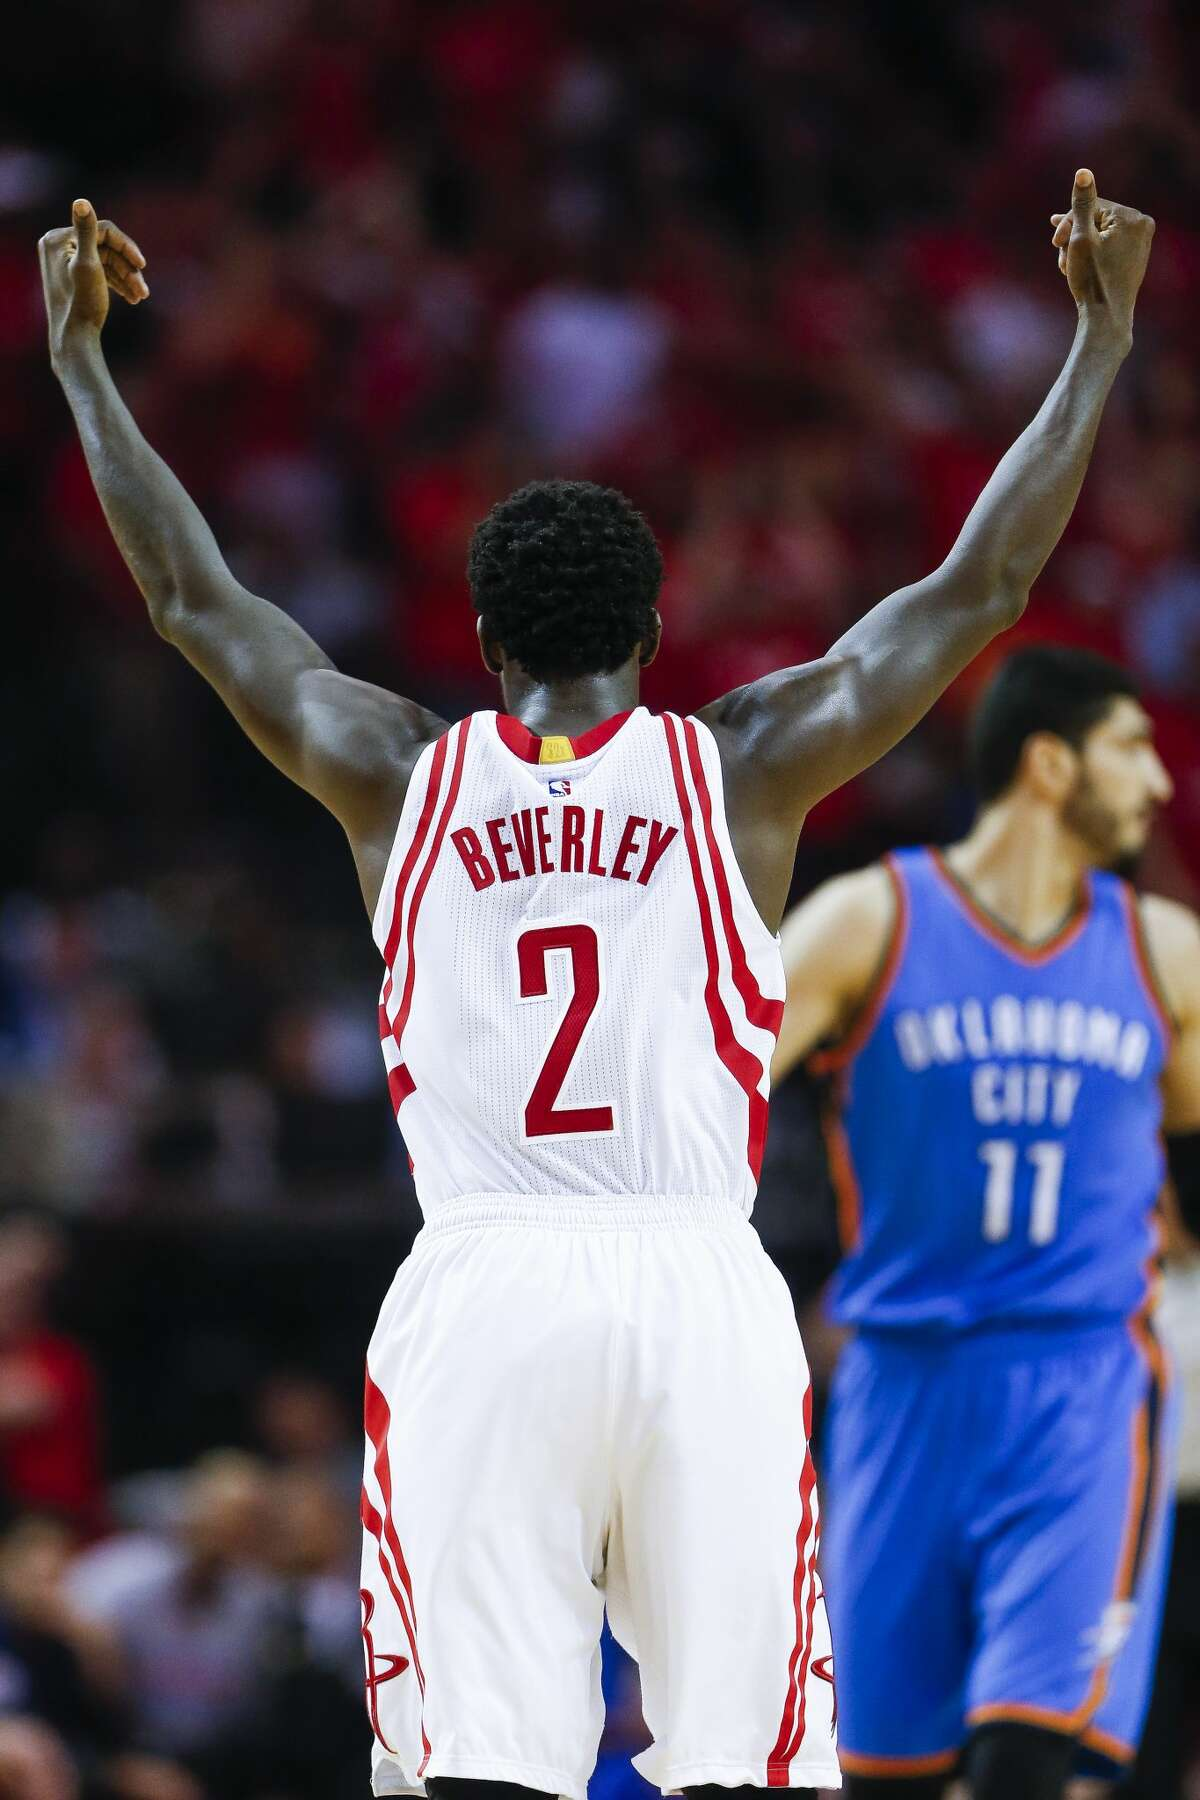 Houston Rockets guard Patrick Beverley (2) pumps up the crowd as the Houston Rockets beat the Oklahoma City Thunder 115-111 in Game 2 of the first-round playoff series Wednesday, April 19, 2017 in Houston at the Toyota Center. ( Michael Ciaglo / Houston Chronicle)